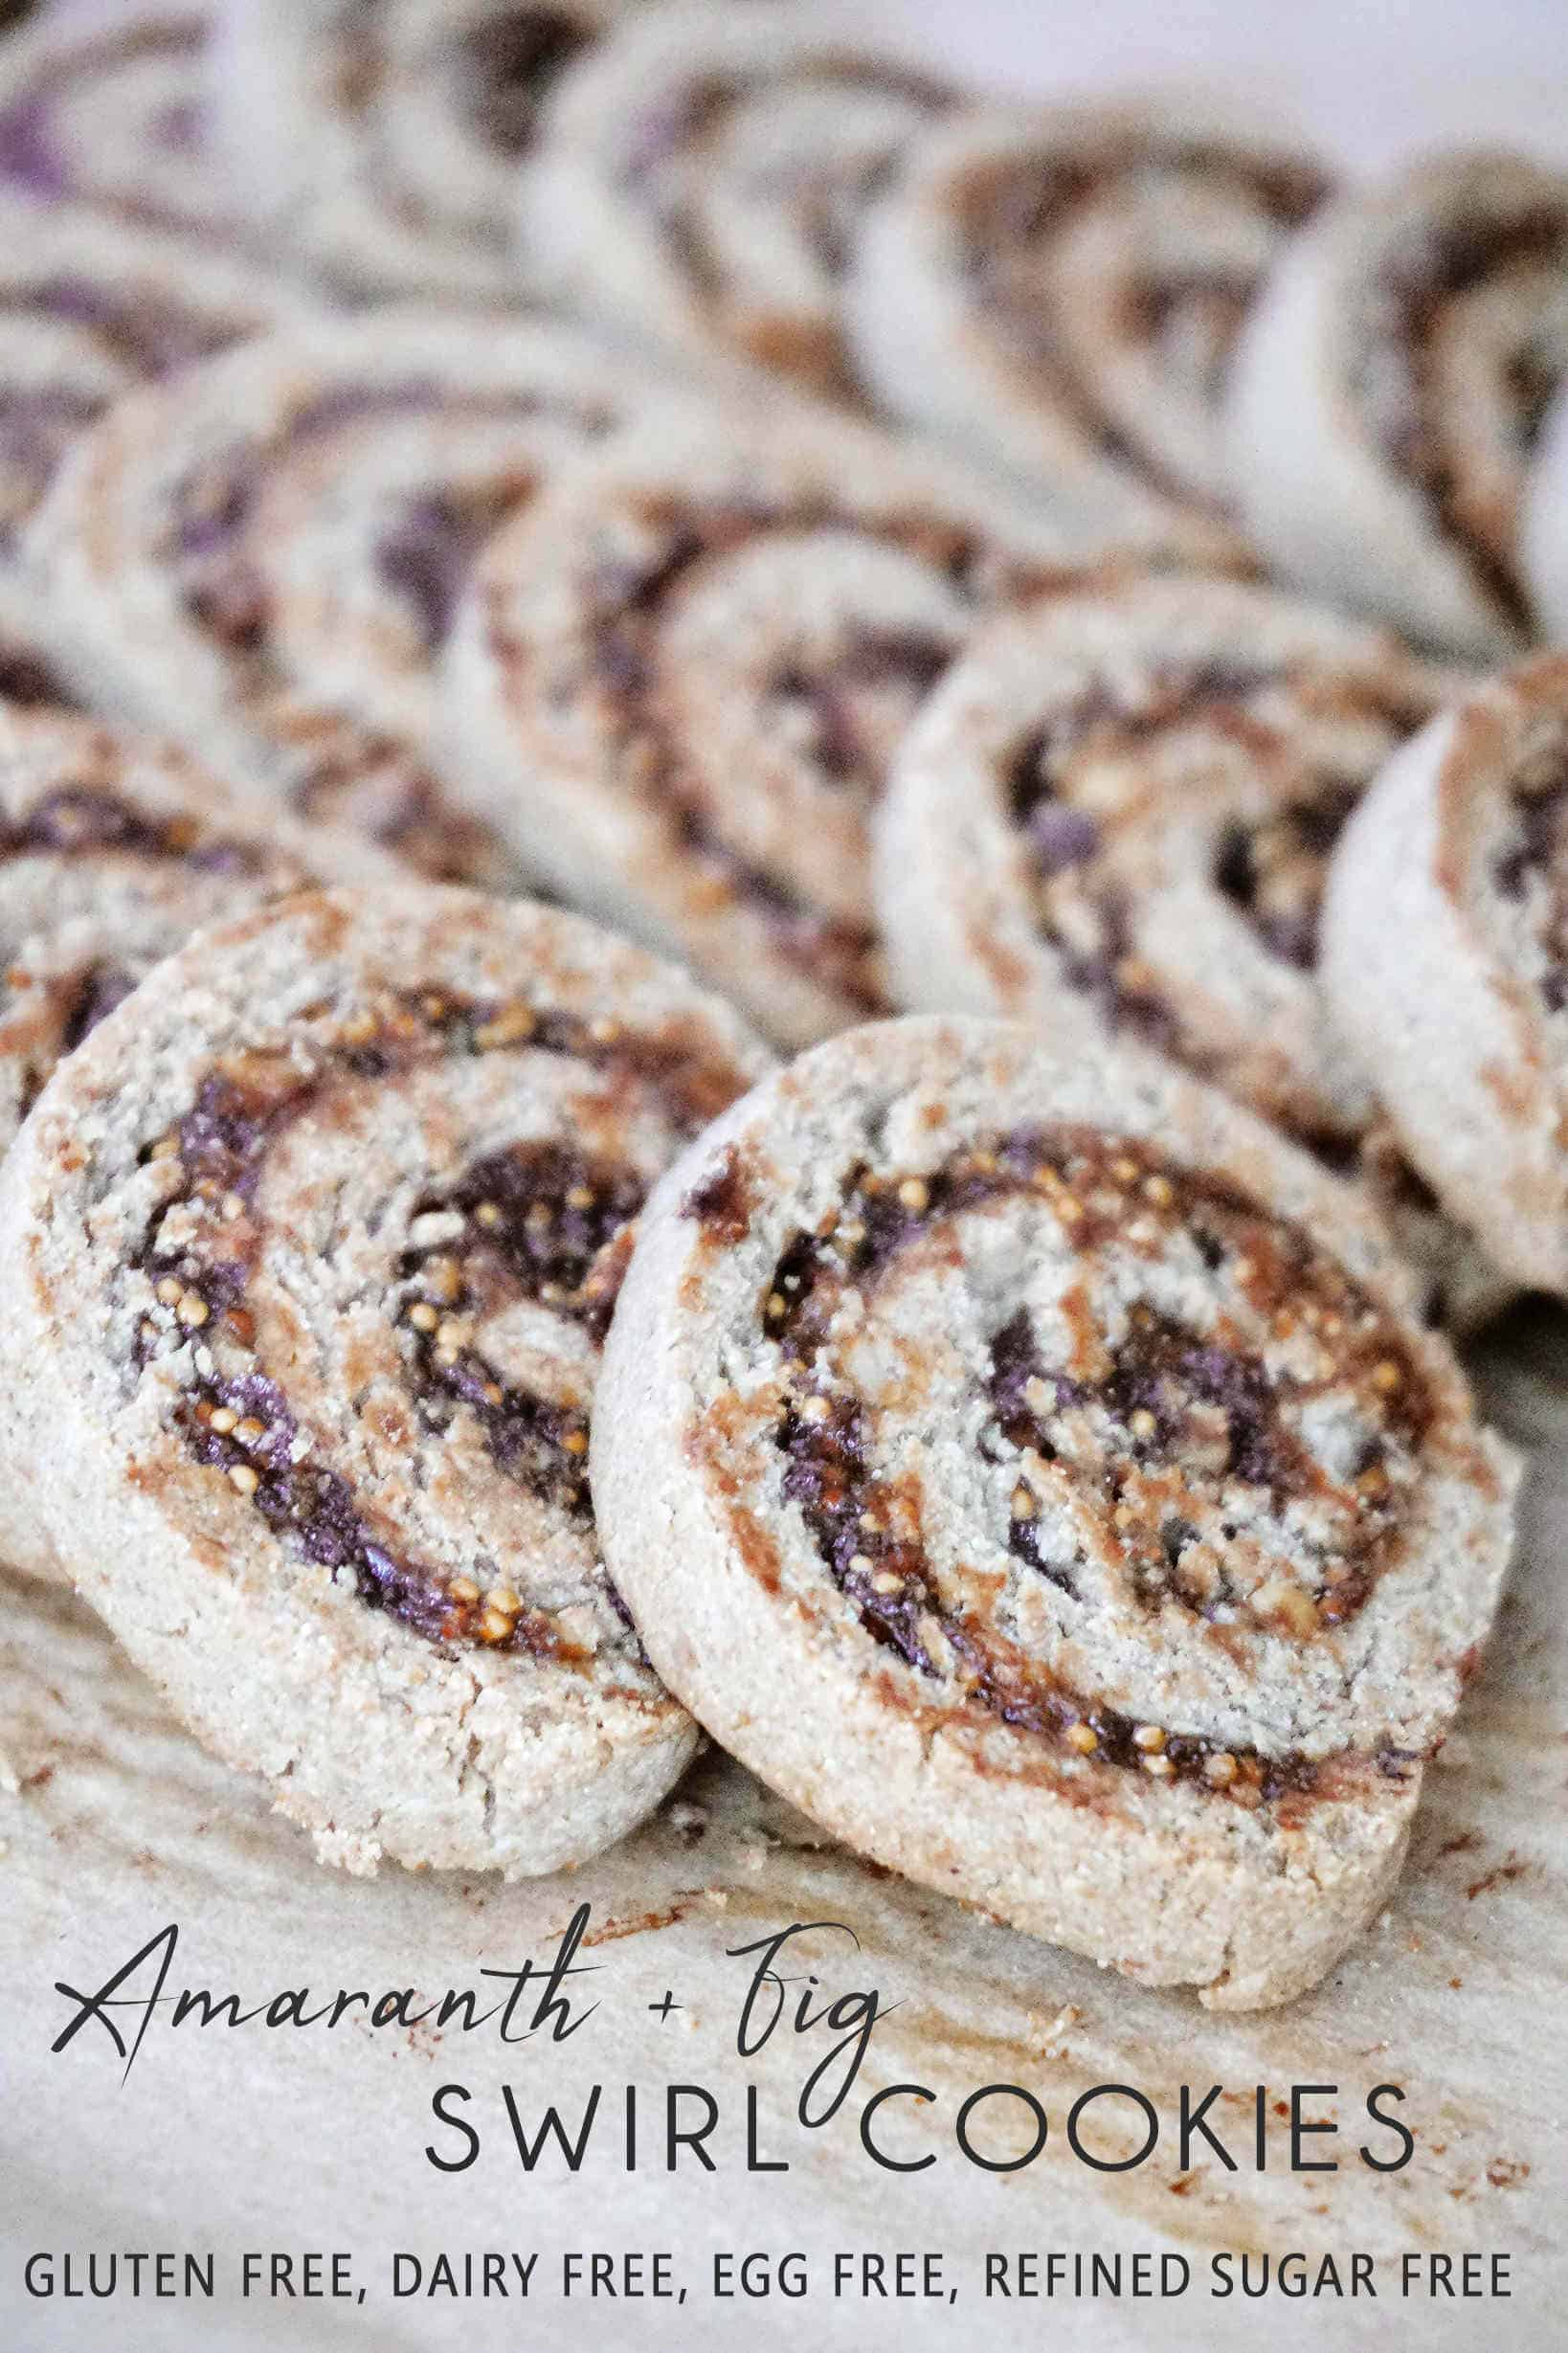 ACrisp fig pinwheel cookies with a swirl of dried figs and chopped walnuts. They are also eggless and dairy free, suitable for gluten free and vegan diets. You can enjoy them as a snack, dessert or as a gift during holidays.